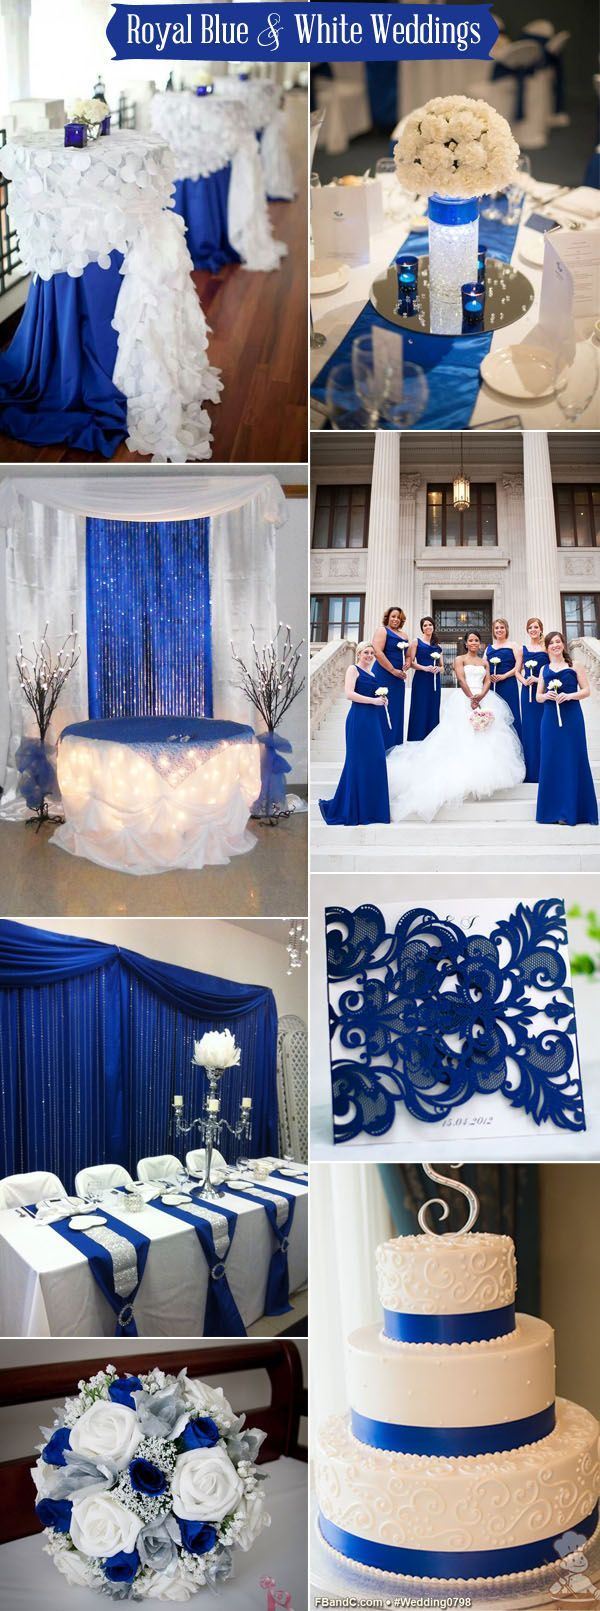 Best 25 royal blue weddings ideas on pinterest royal for White wedding dress with blue accents